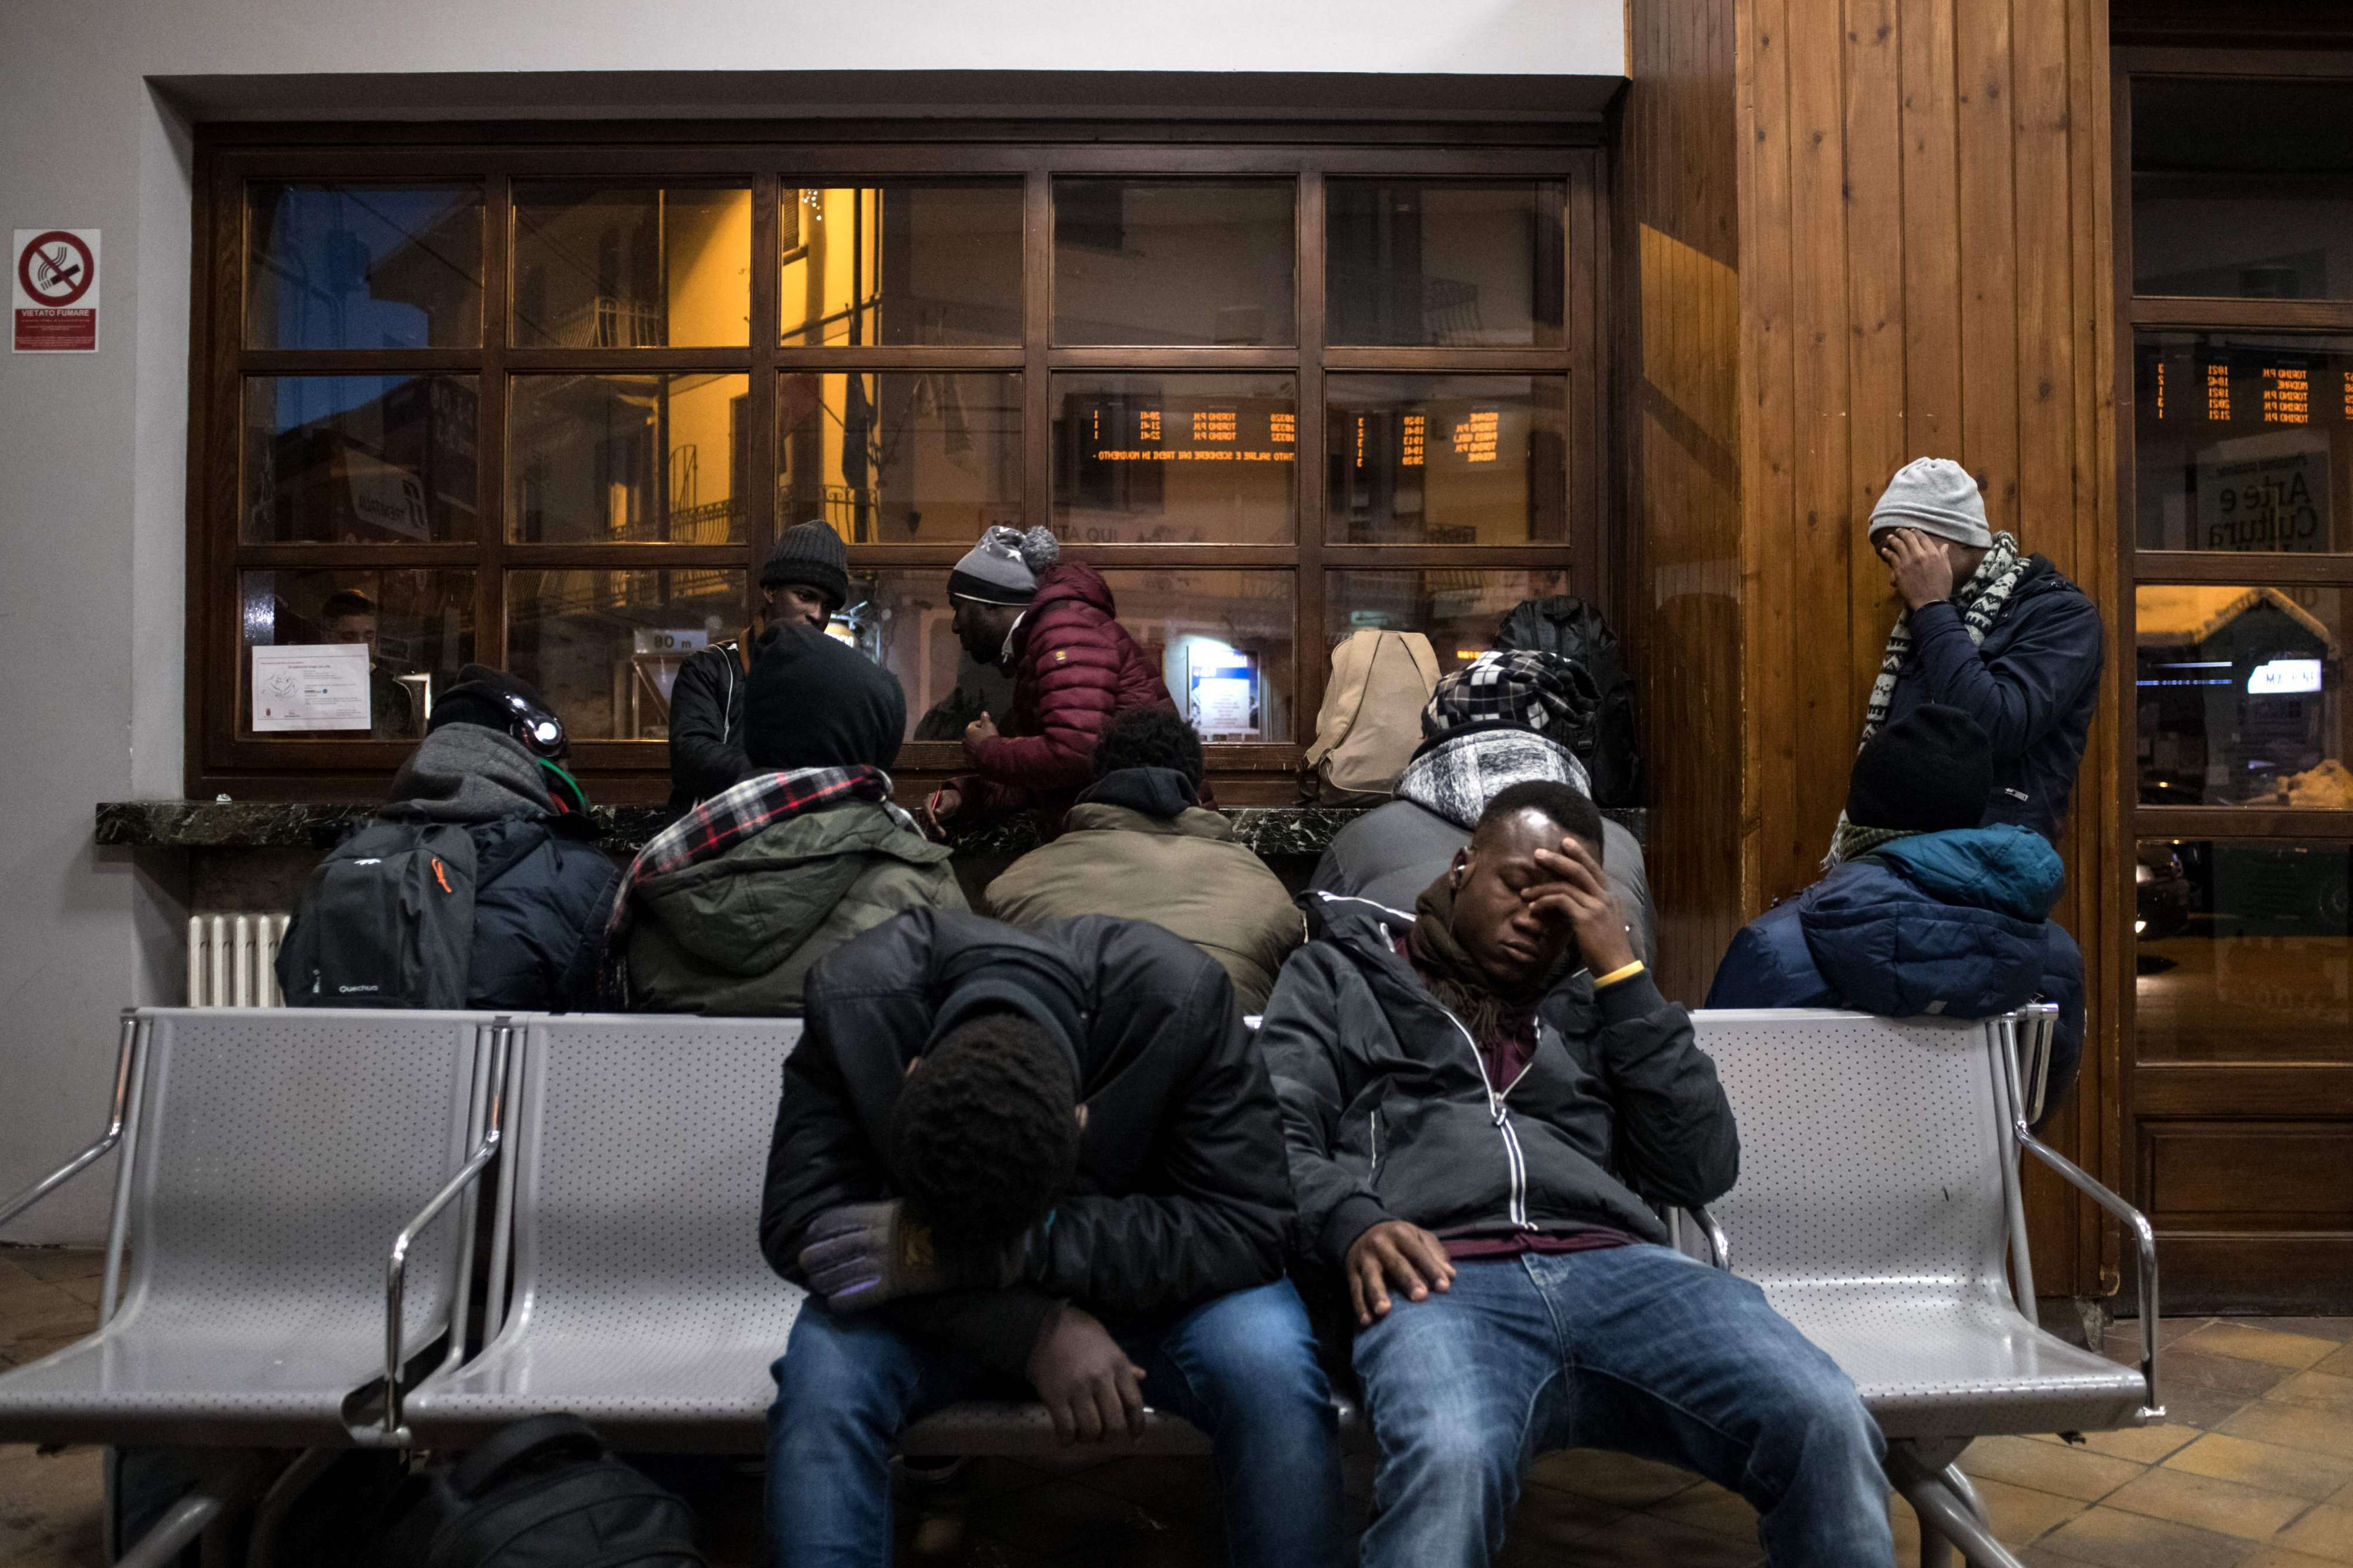 Migrants rest in the waiting hall of the train station in Italy's Bardonecchia, on January 13.   (AFP)